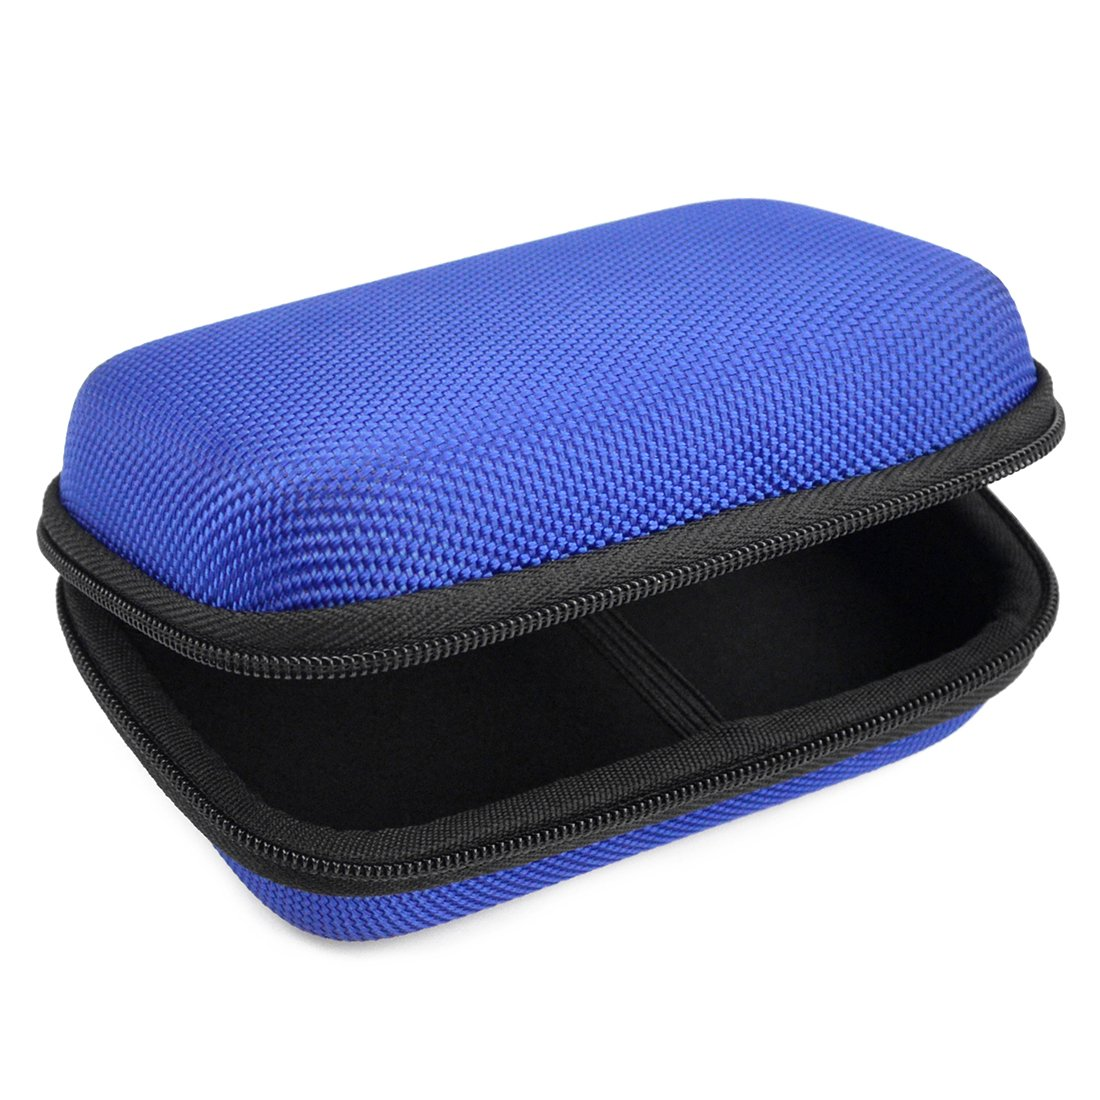 Geekria Hard Shell Media Player Carrying Case for FiiO M3 X1 X3 X5 X7/Protective Travel bag (Blue)